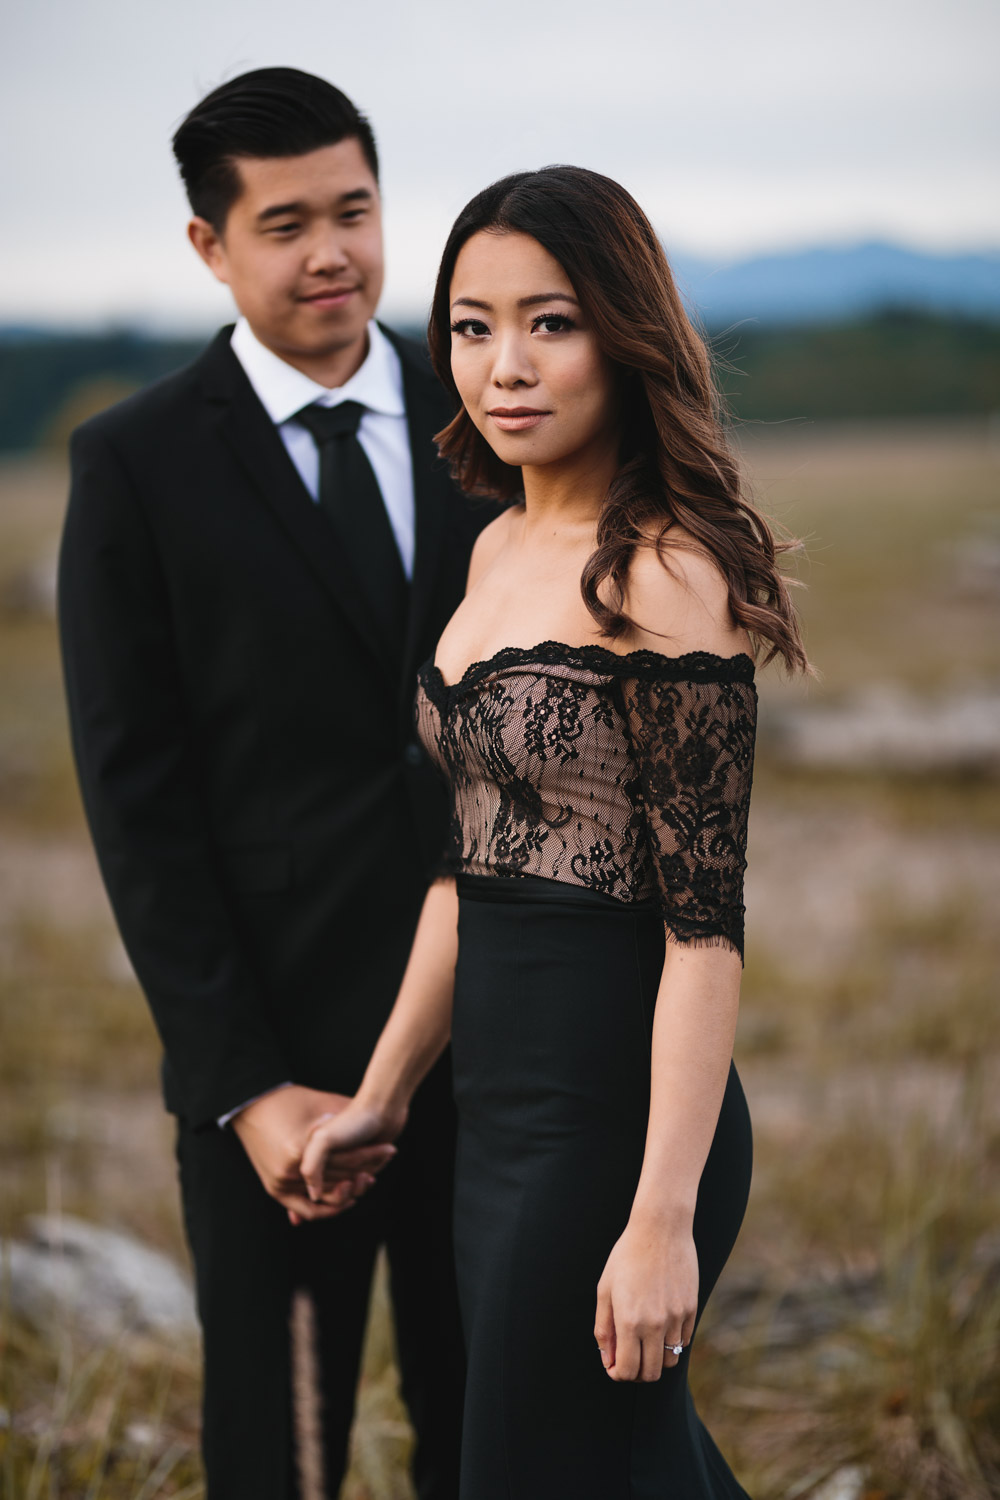 joyce and vince wedding engagement photography in richmond bc at iona beach park